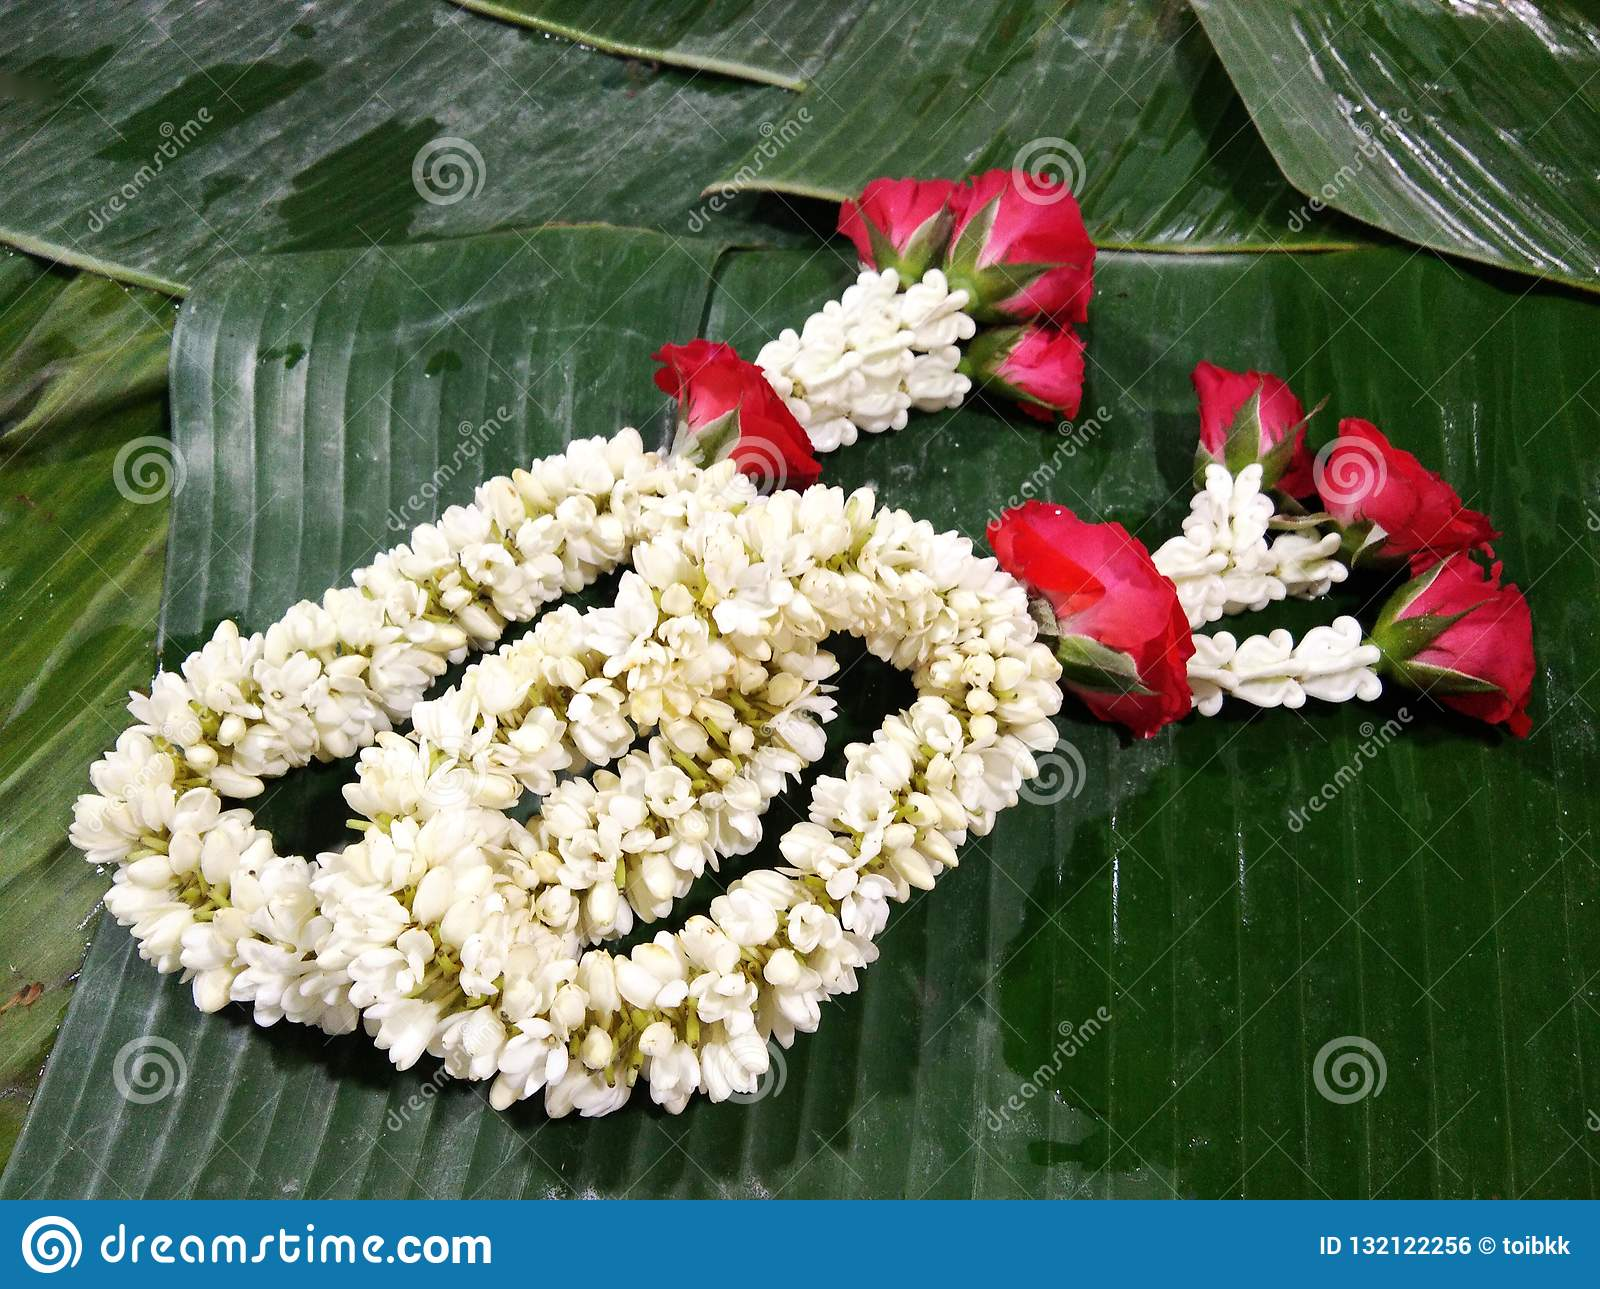 Traditional Thai garland of white blossom Psilanthus bengalensis and red rose flowers